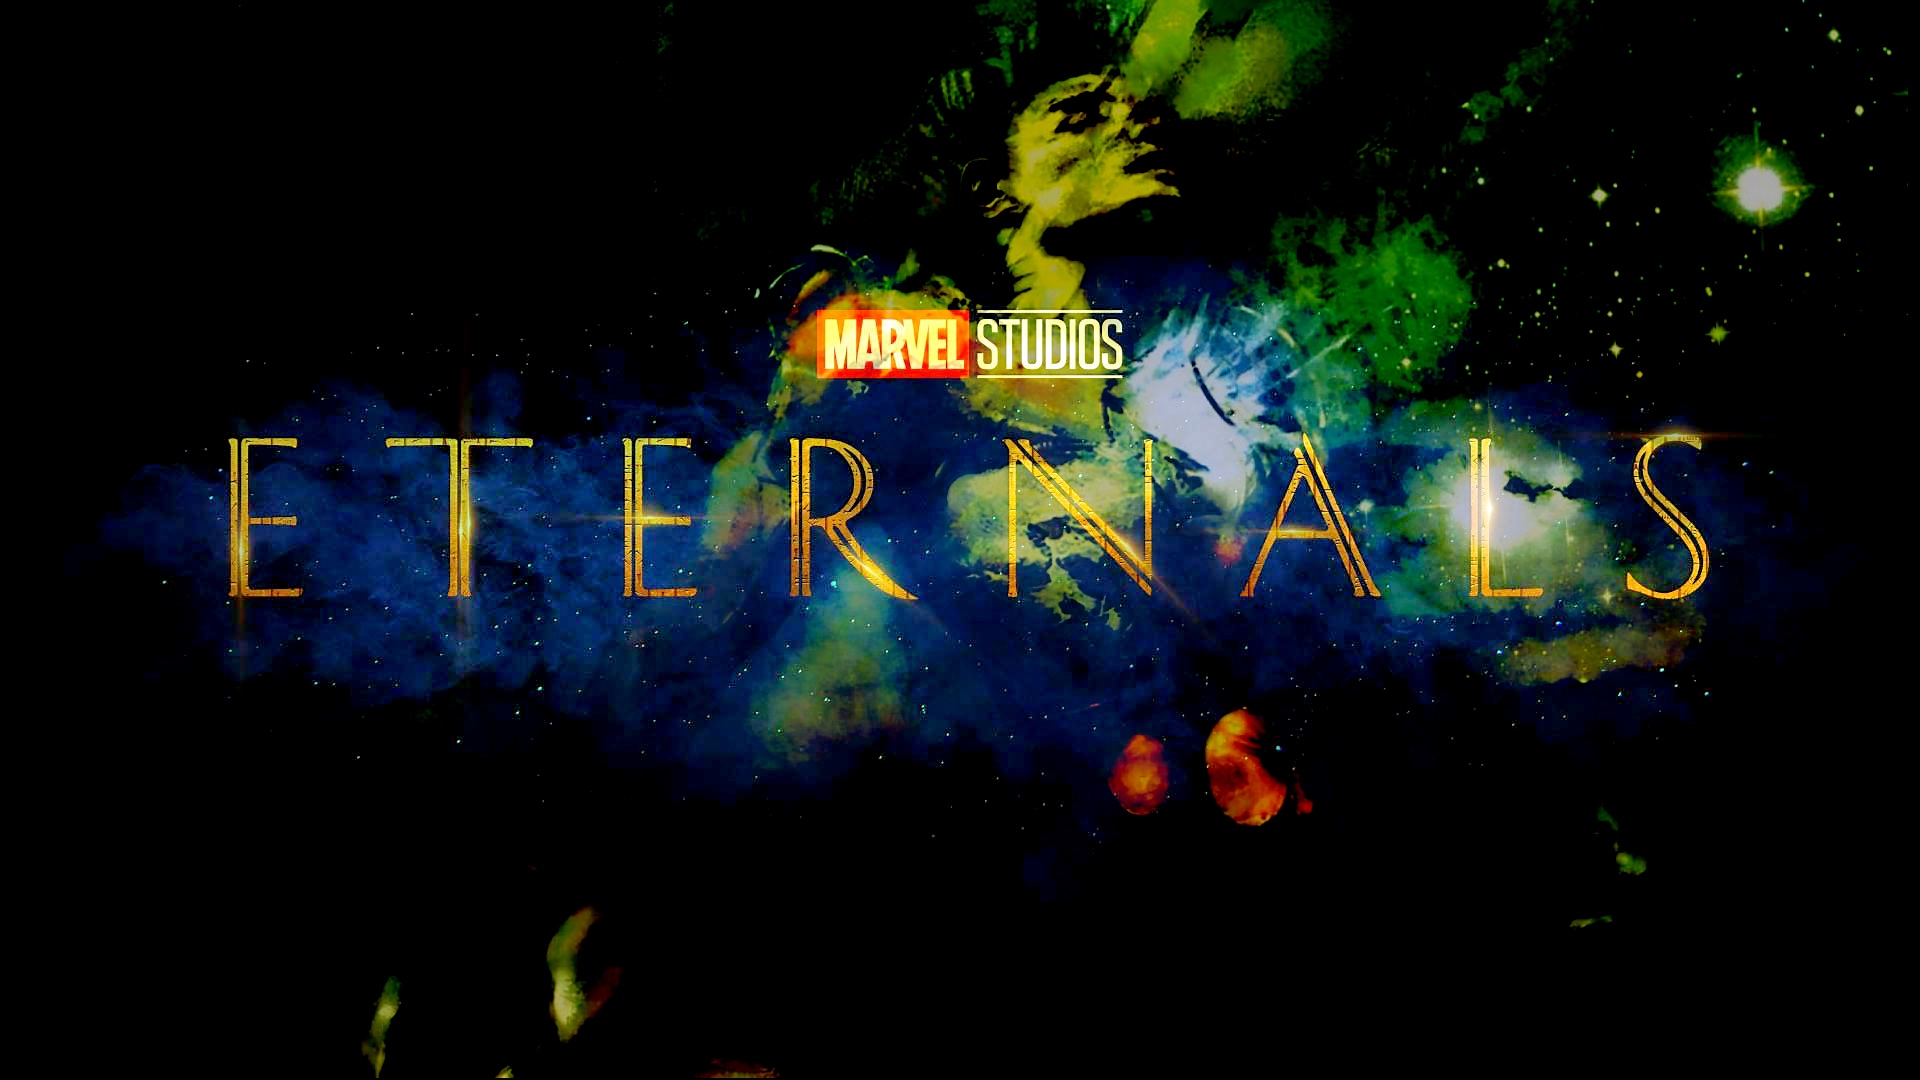 Marvel Studios Eternals | Plot Details and More